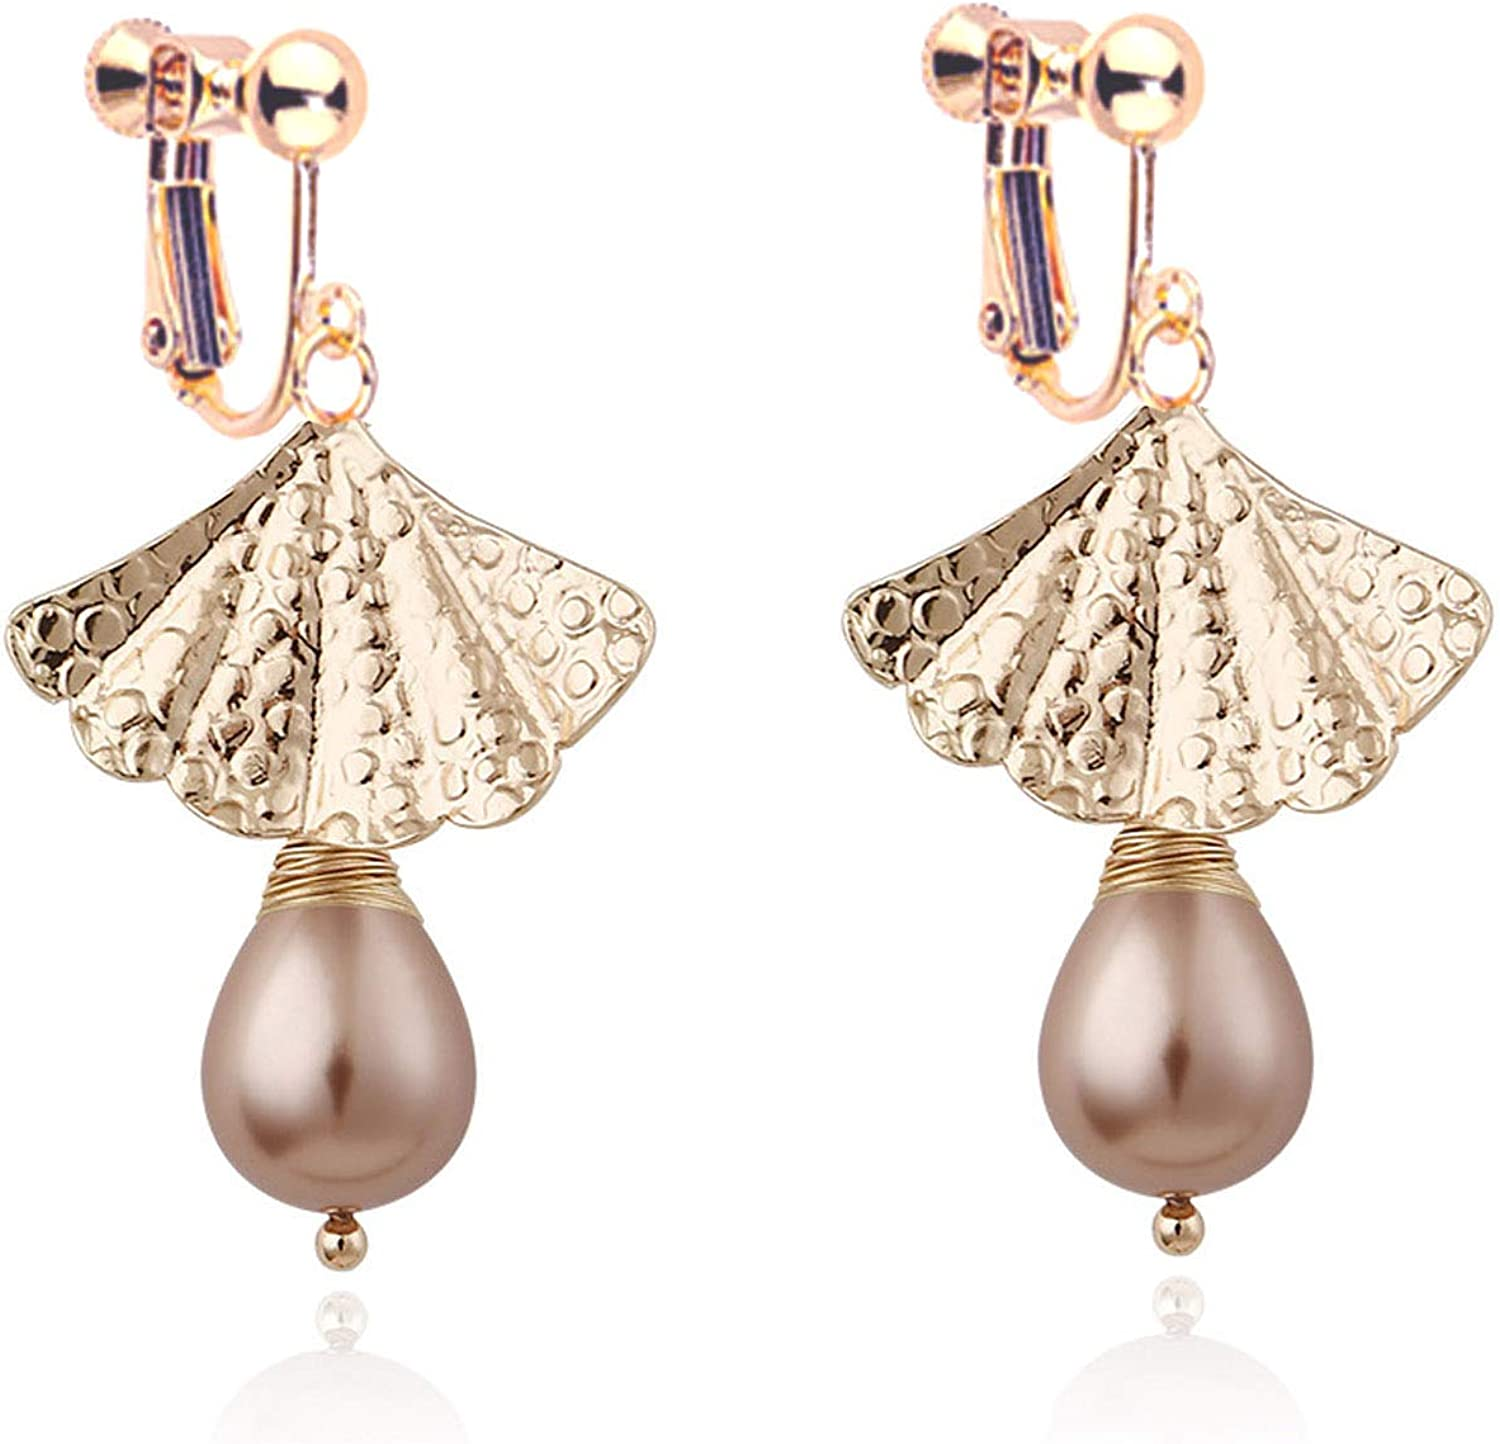 Dangle Earrings Clip on Earrings for Women Girls Fan Pink Pearl Bohemian Boho Drop Dangling Piecered or No Piecered Gold Tone Mother Day